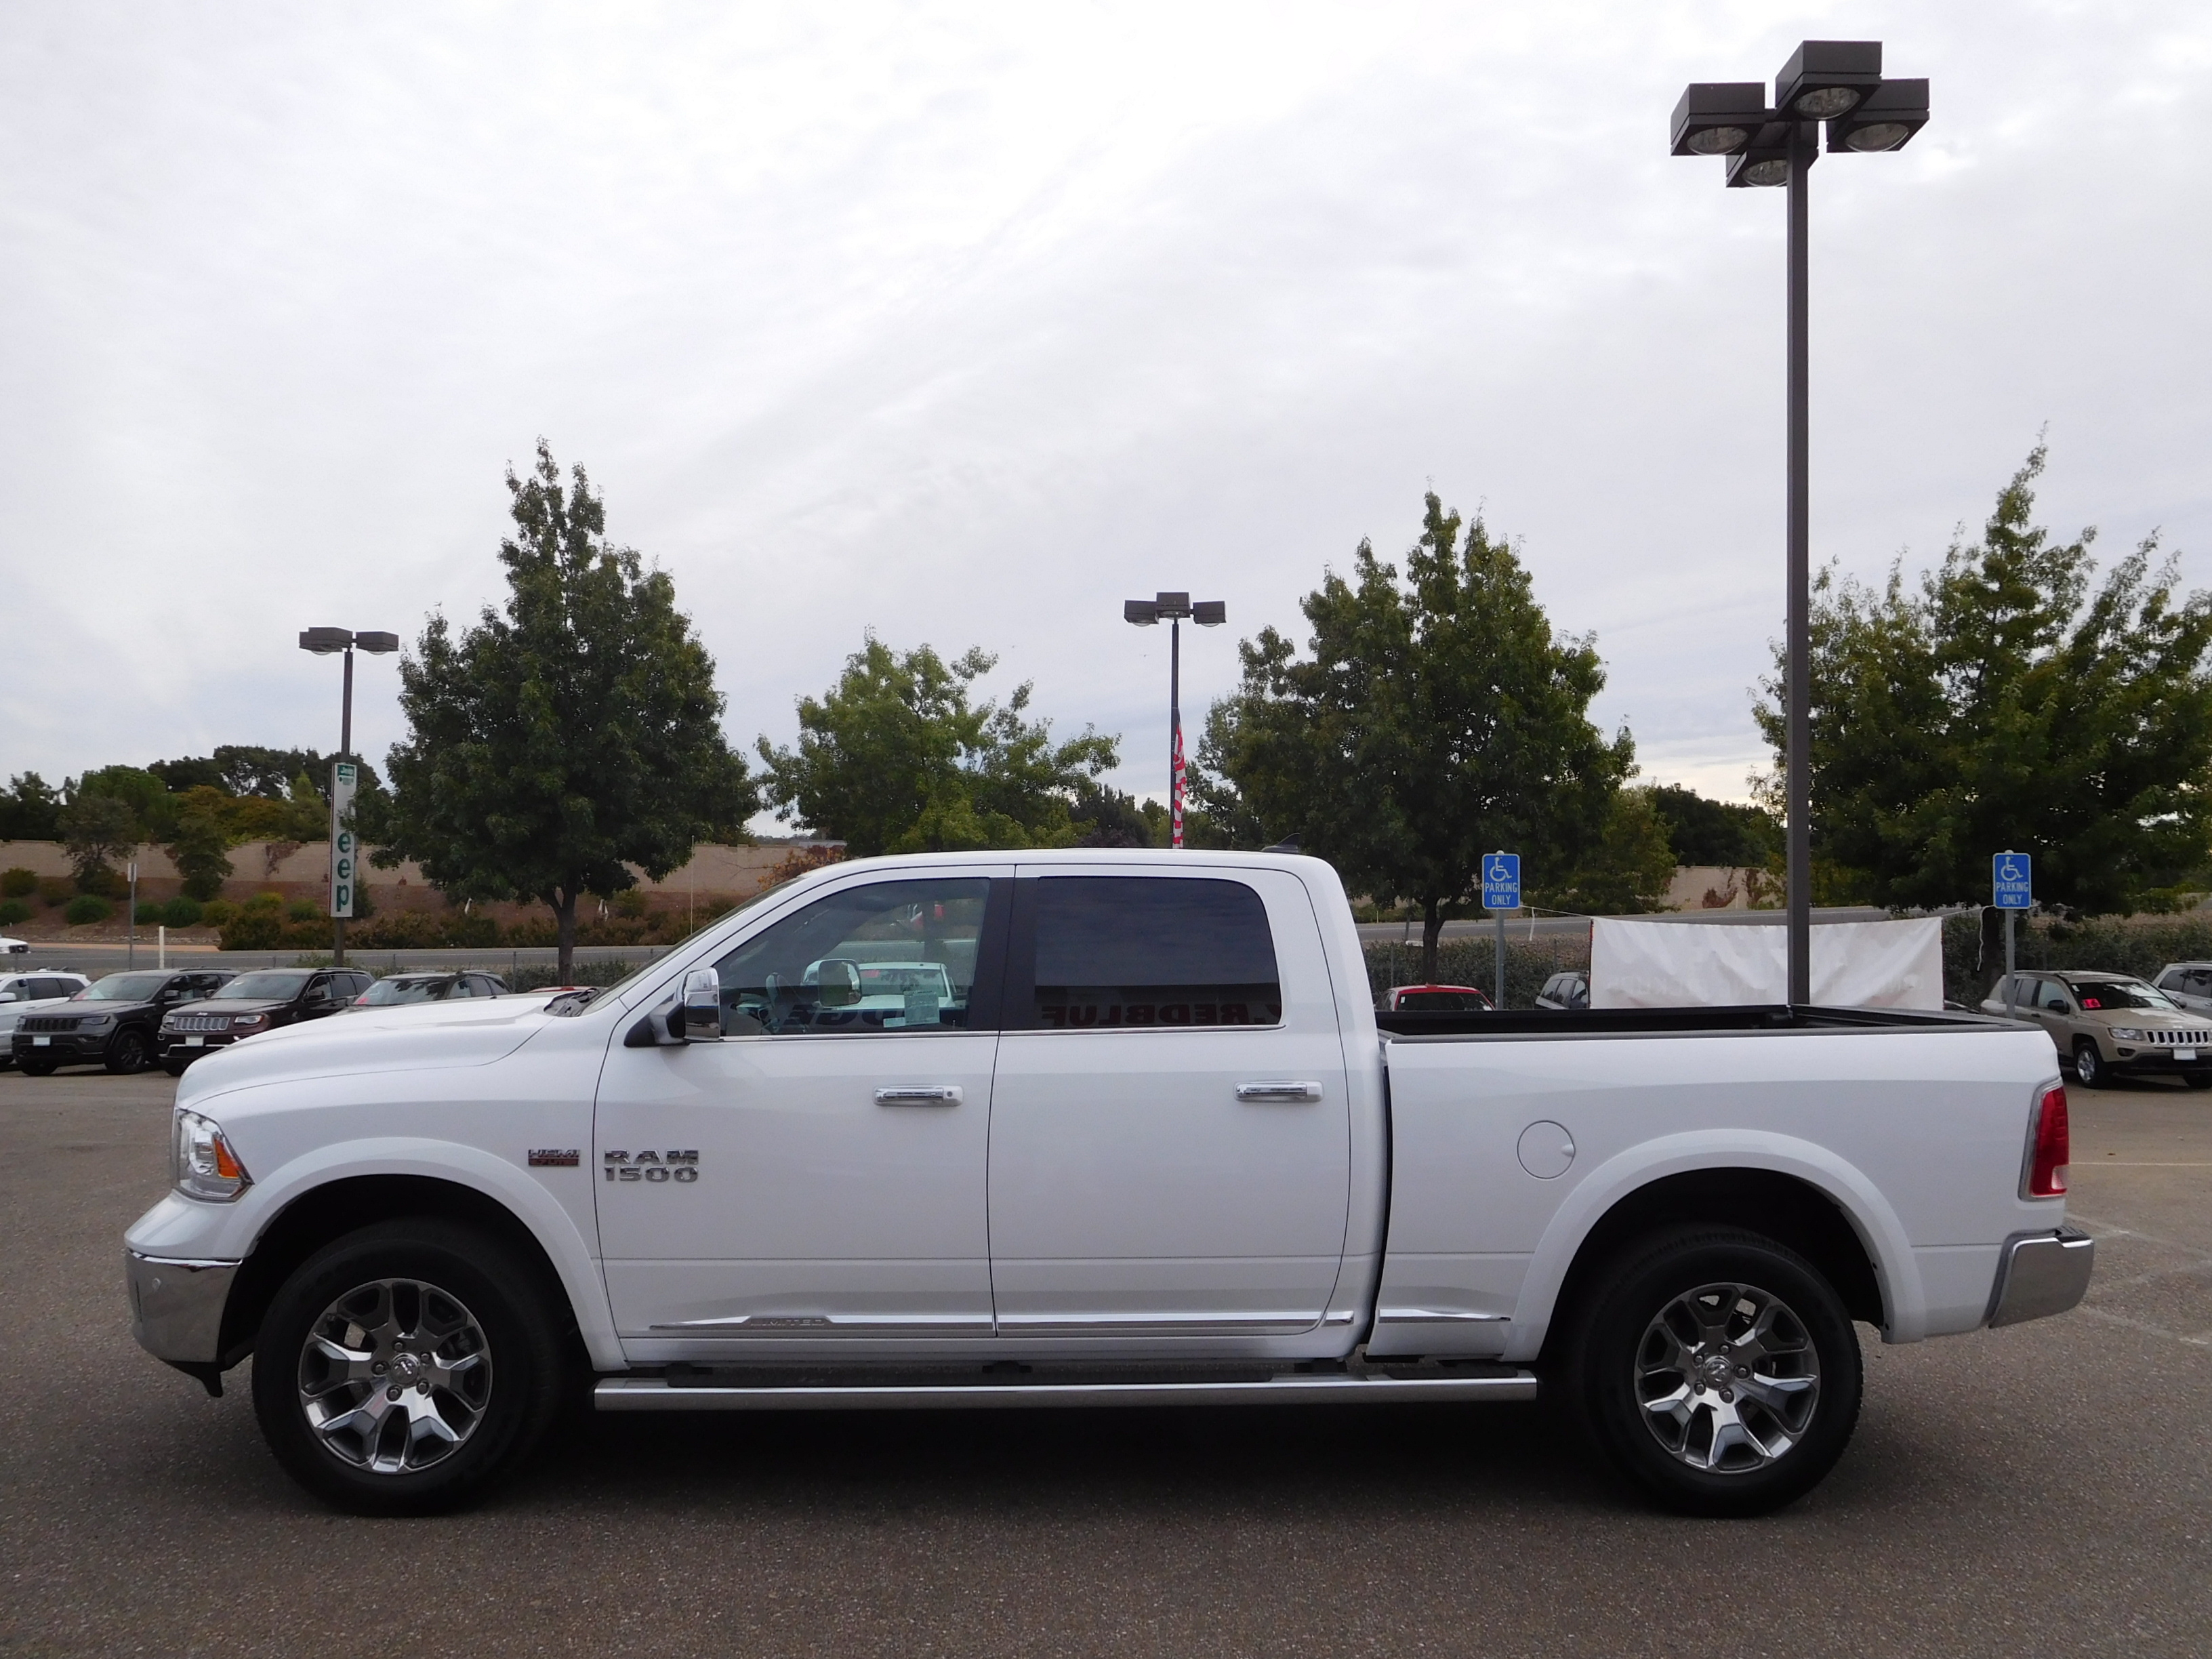 2017 Ram 1500 Crew Cab 4x4, Pickup #13945 - photo 6